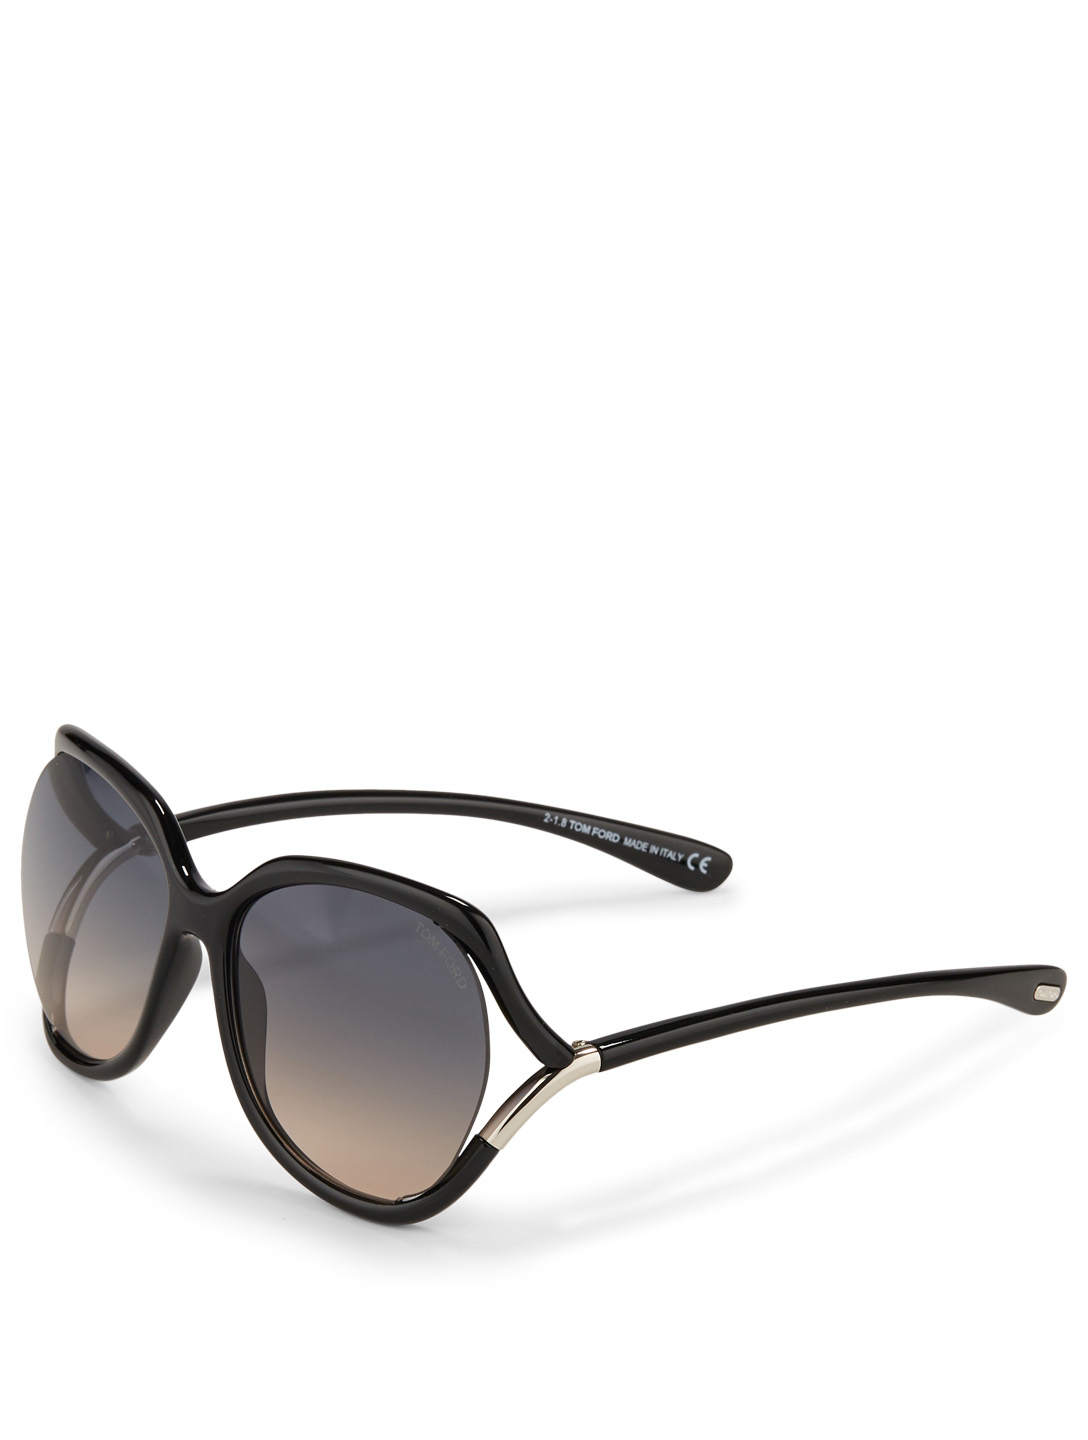 TOM FORD Anouk Square Sunglasses Women's Black